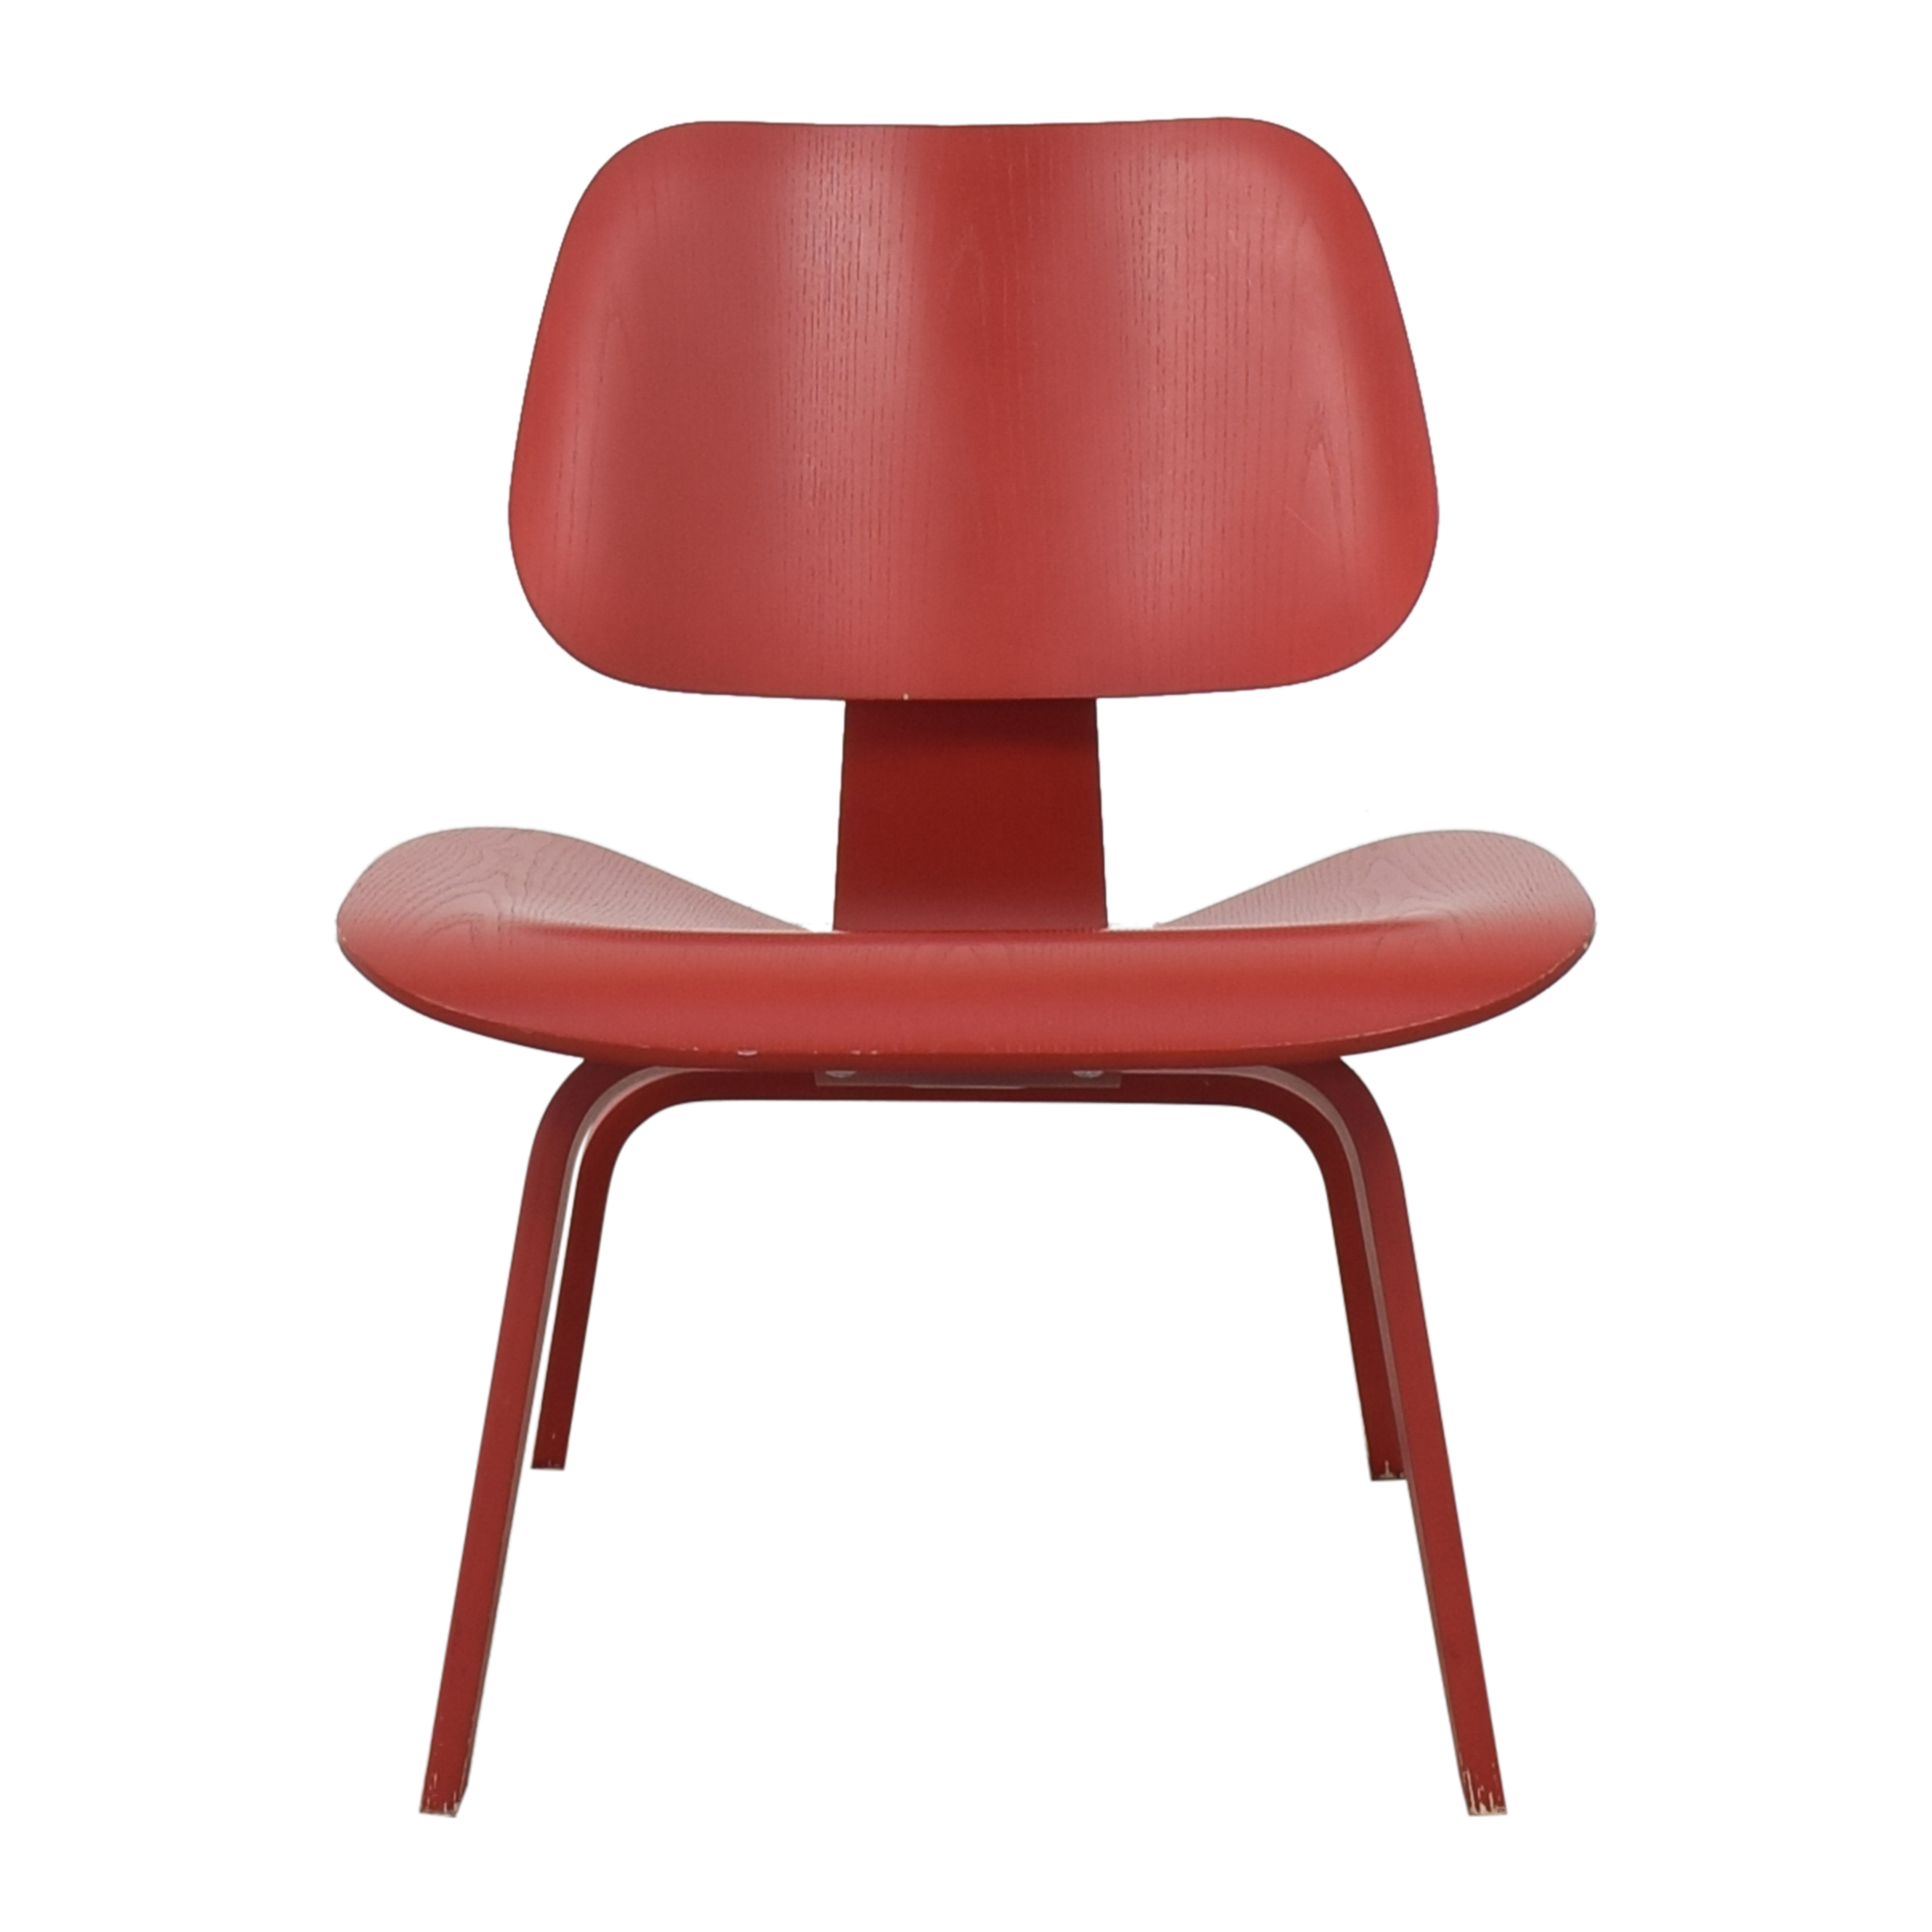 Herman Miller Eames Molded Lounge Chair sale